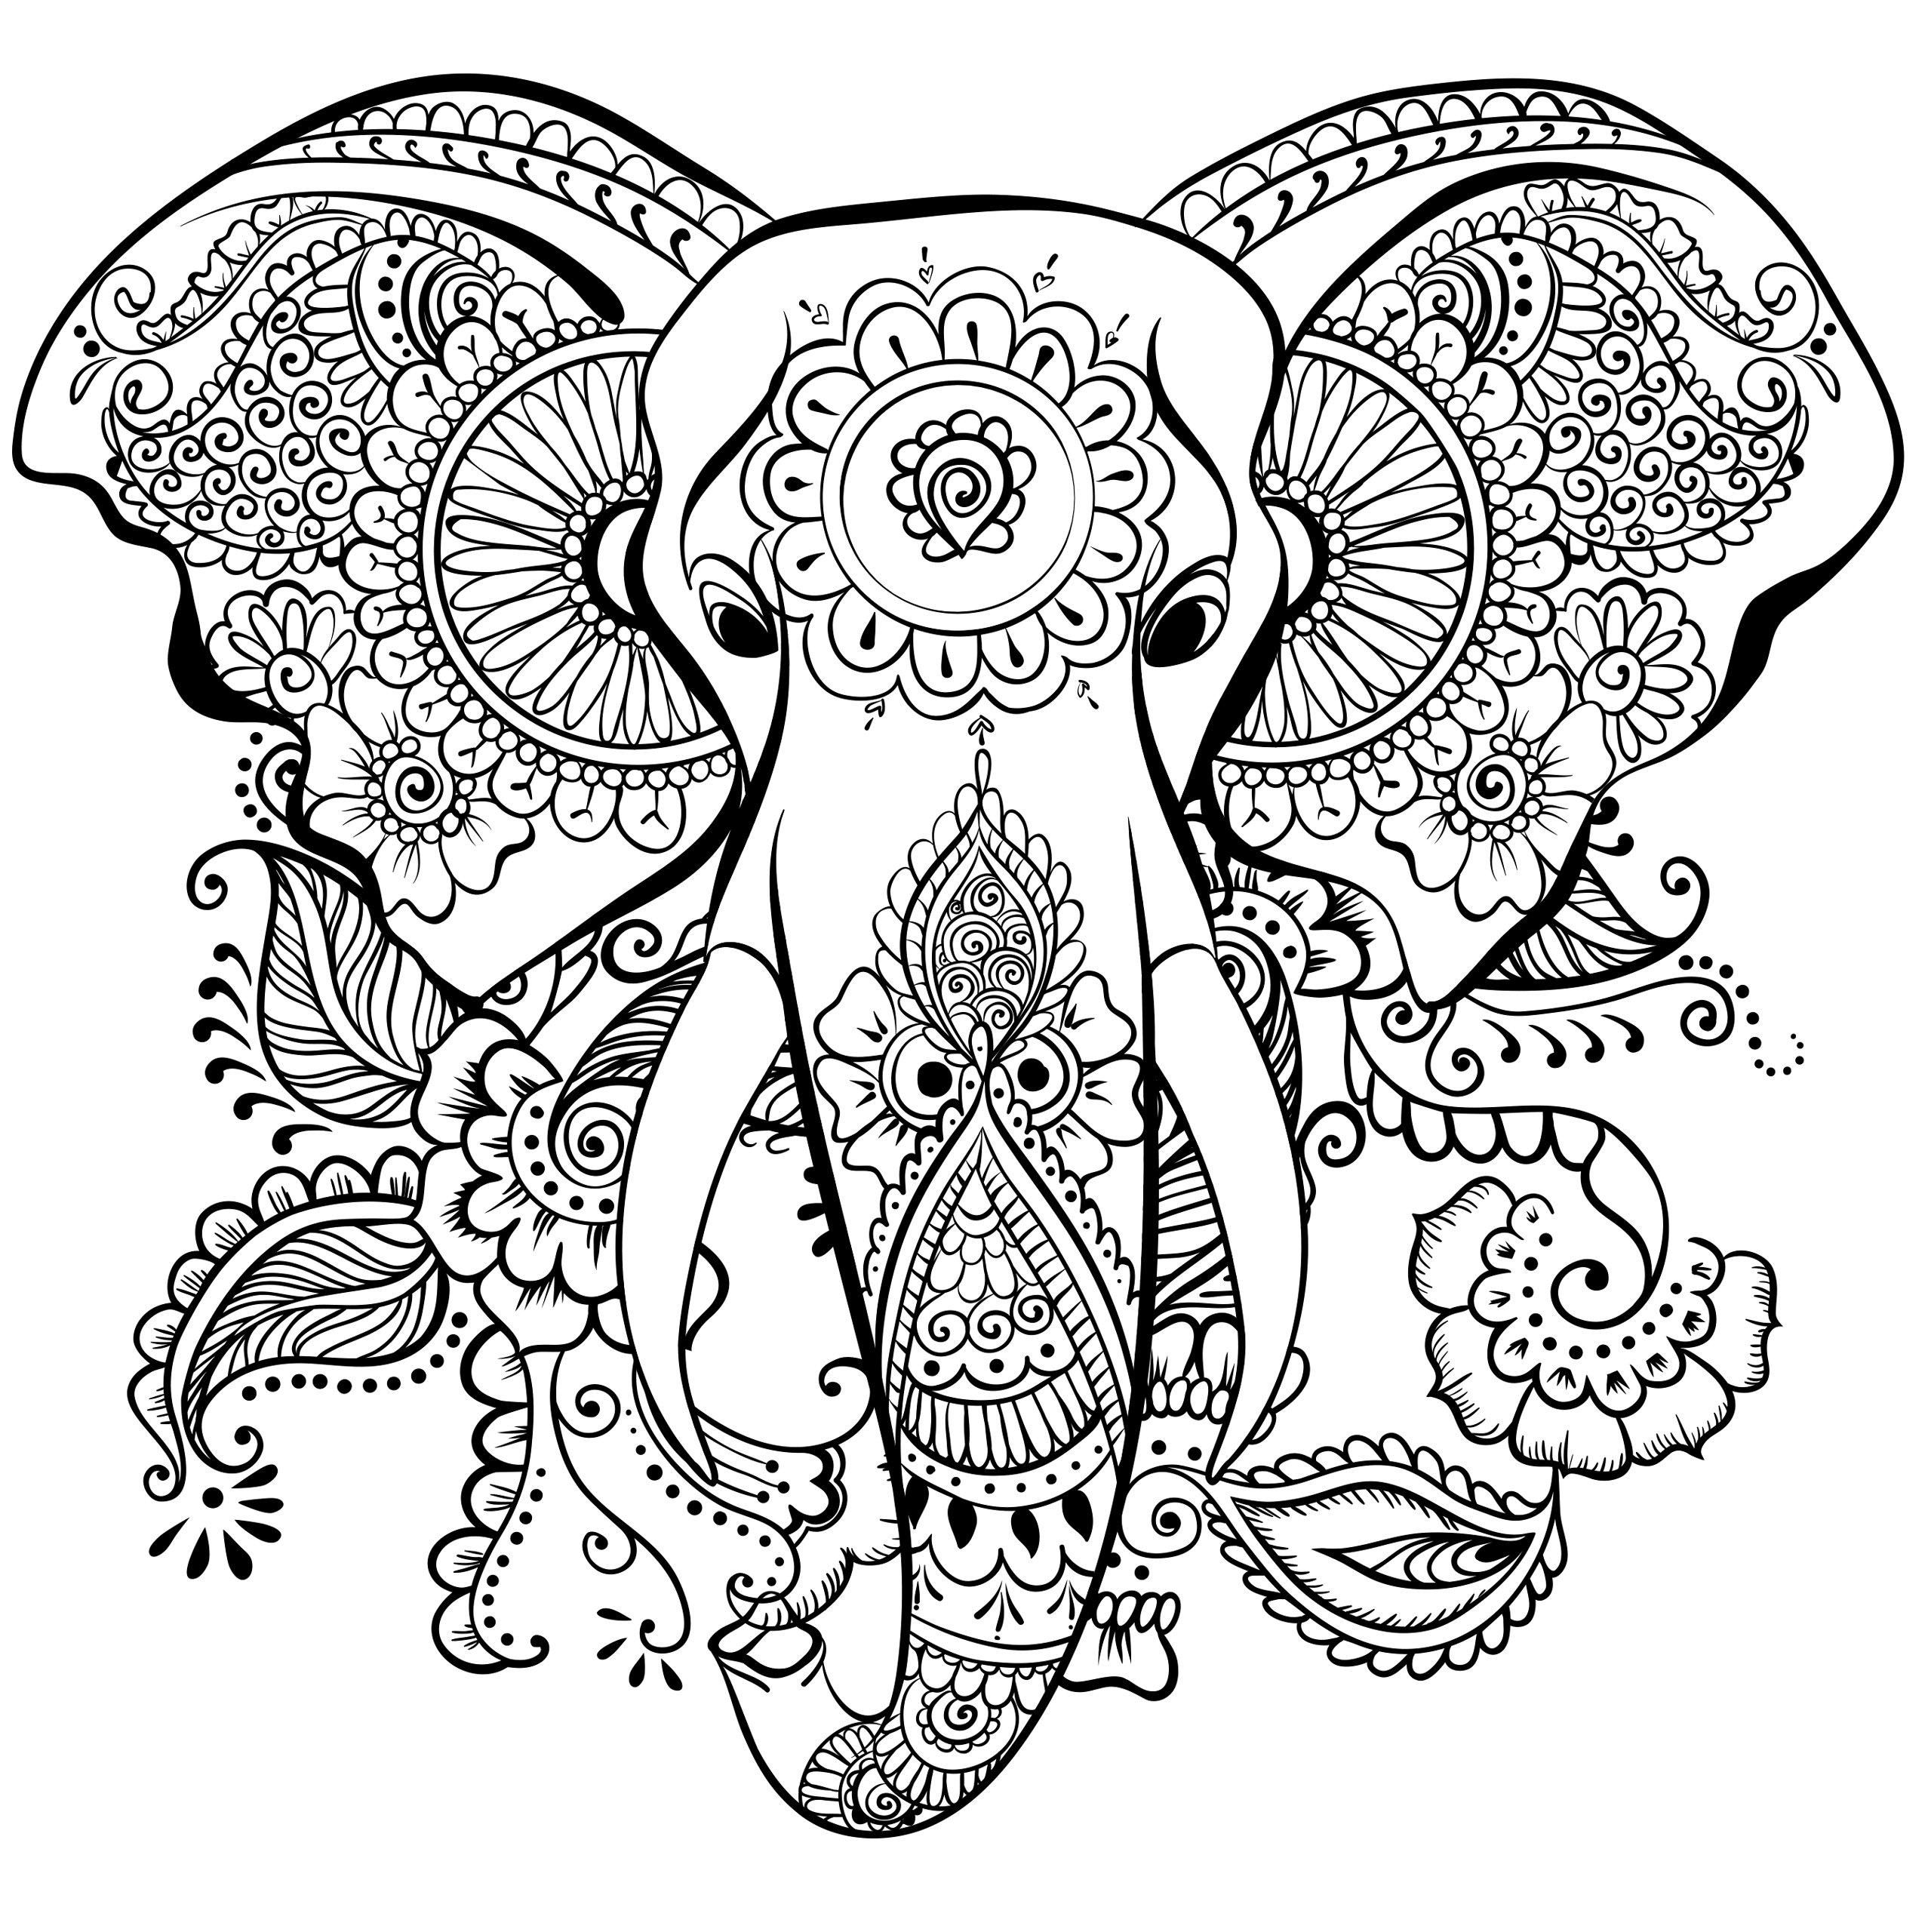 42 Coloring Pages Coloring Book Elephant Coloring Page Mandala Coloring Pages Mandala Coloring Books